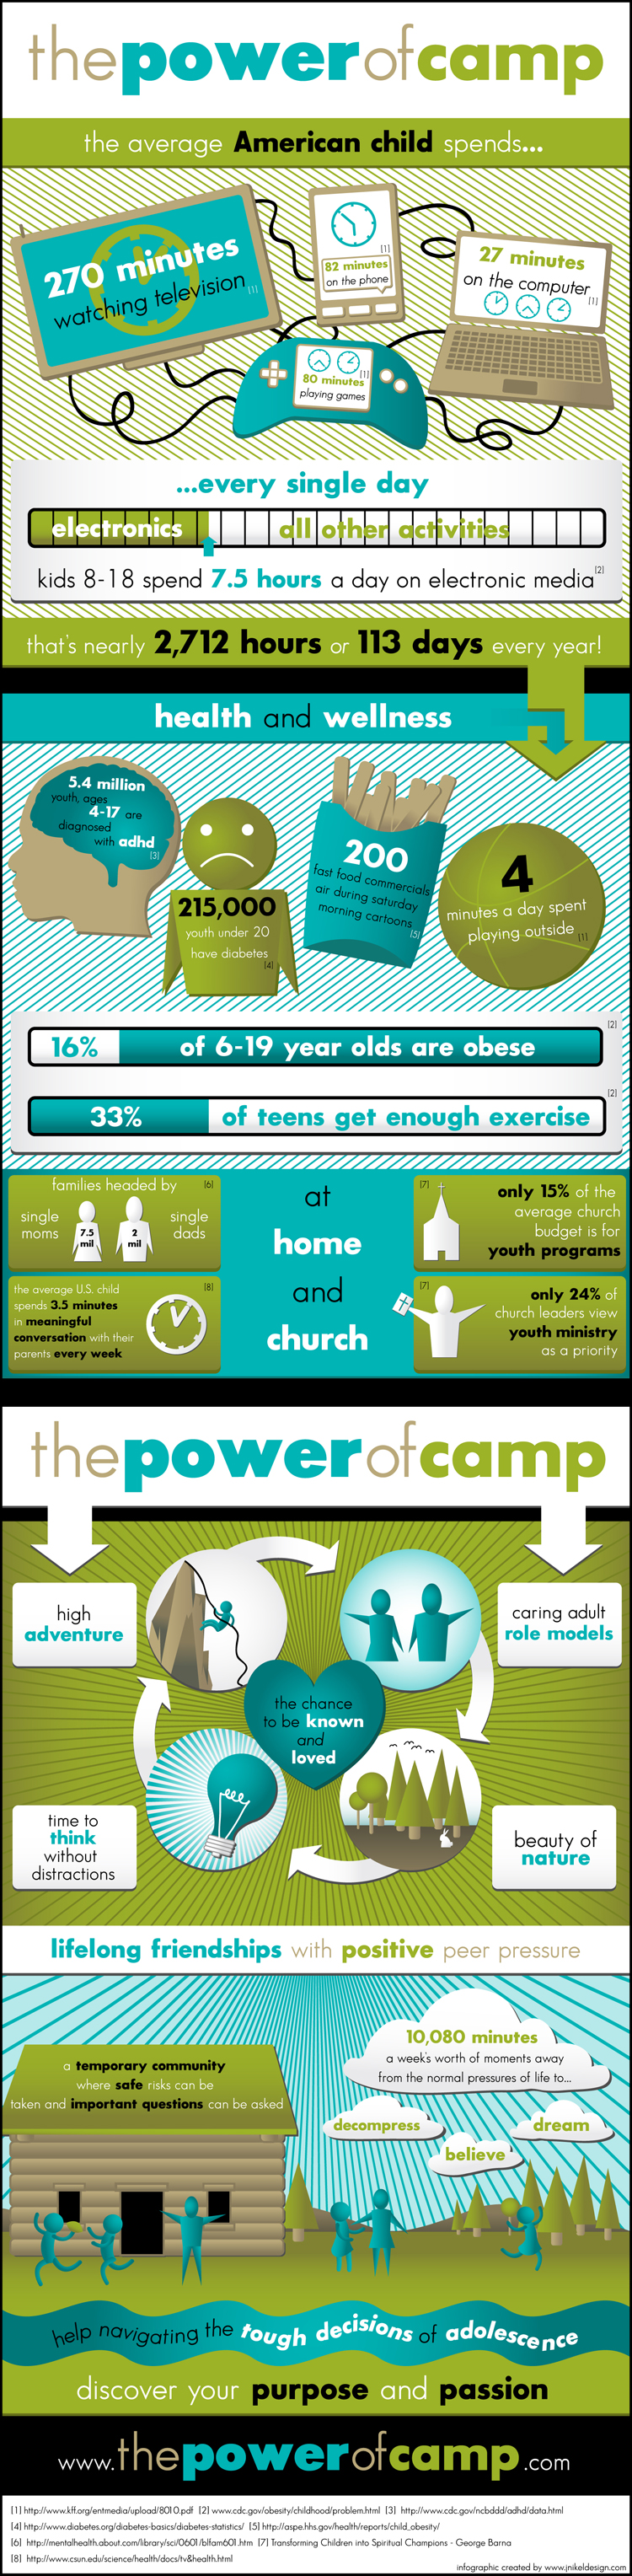 The power of camp